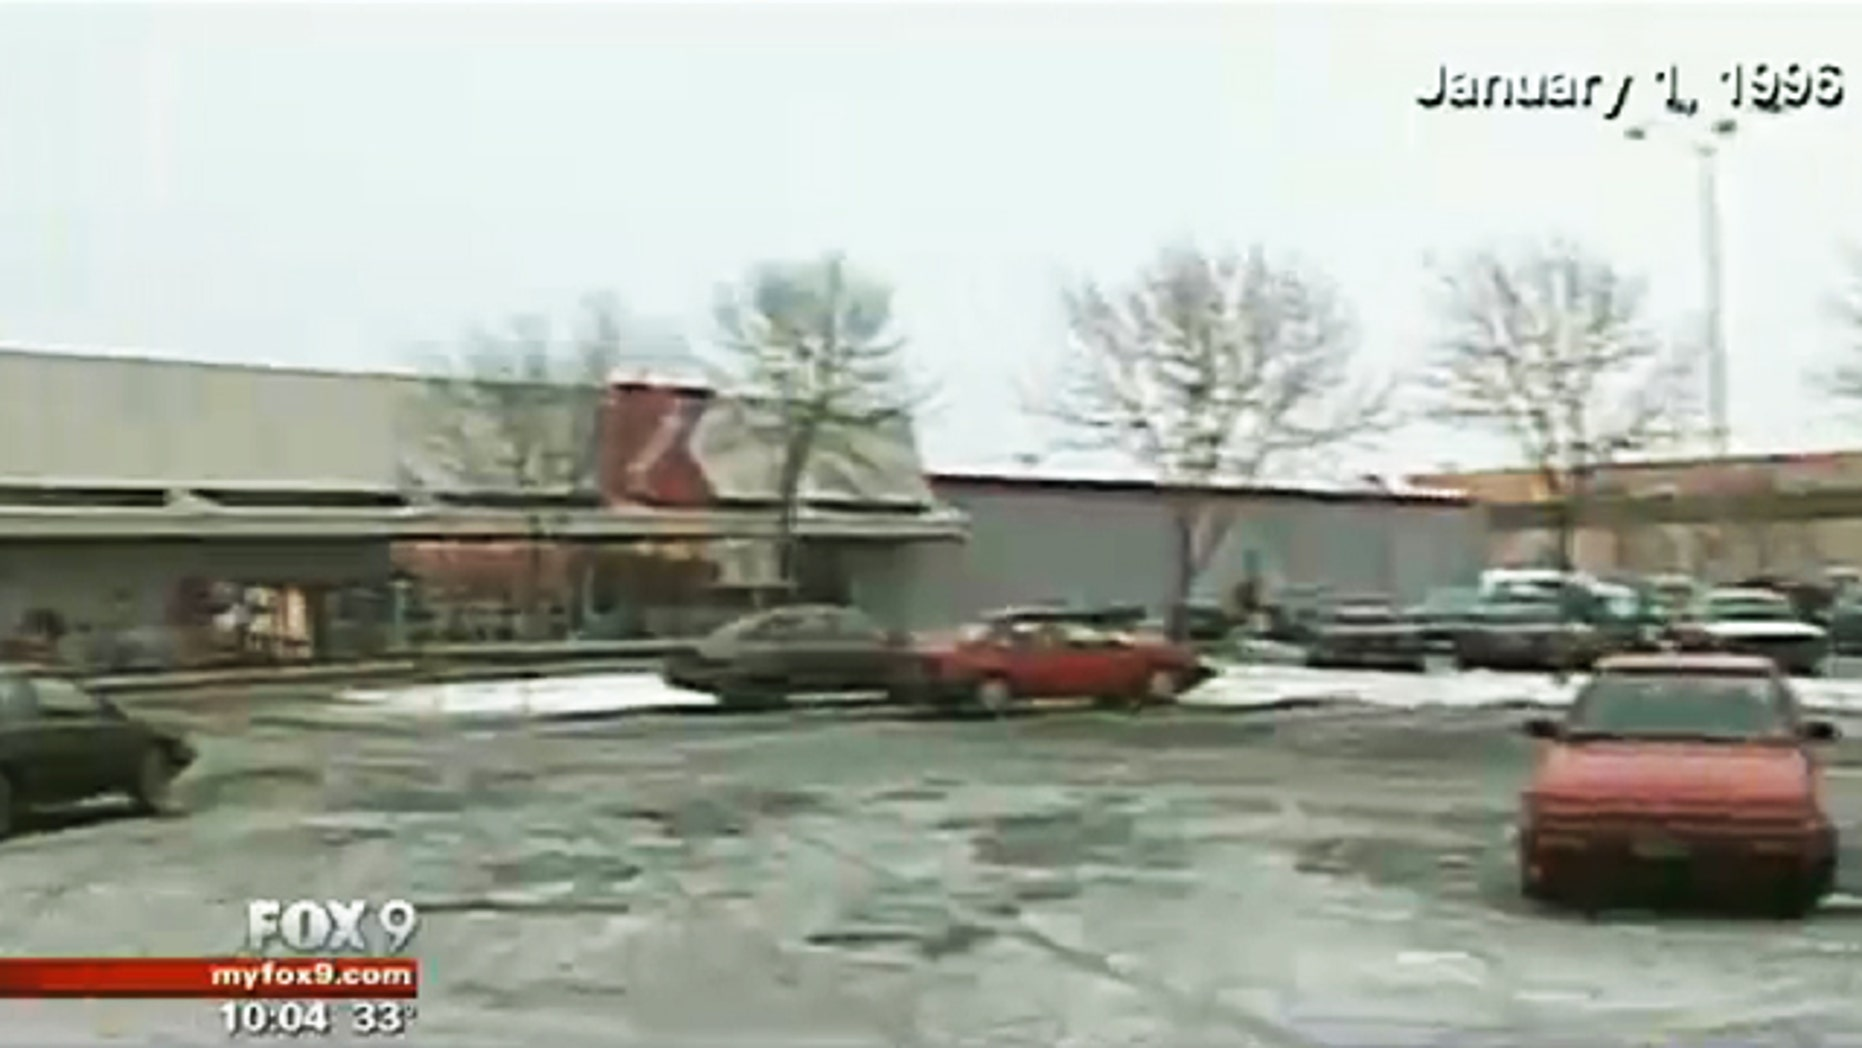 Jan. 1, 1996: This video image shows the Minneapolis parking lot where the body of Anne Dunlap was discovered in the trunk of her car.